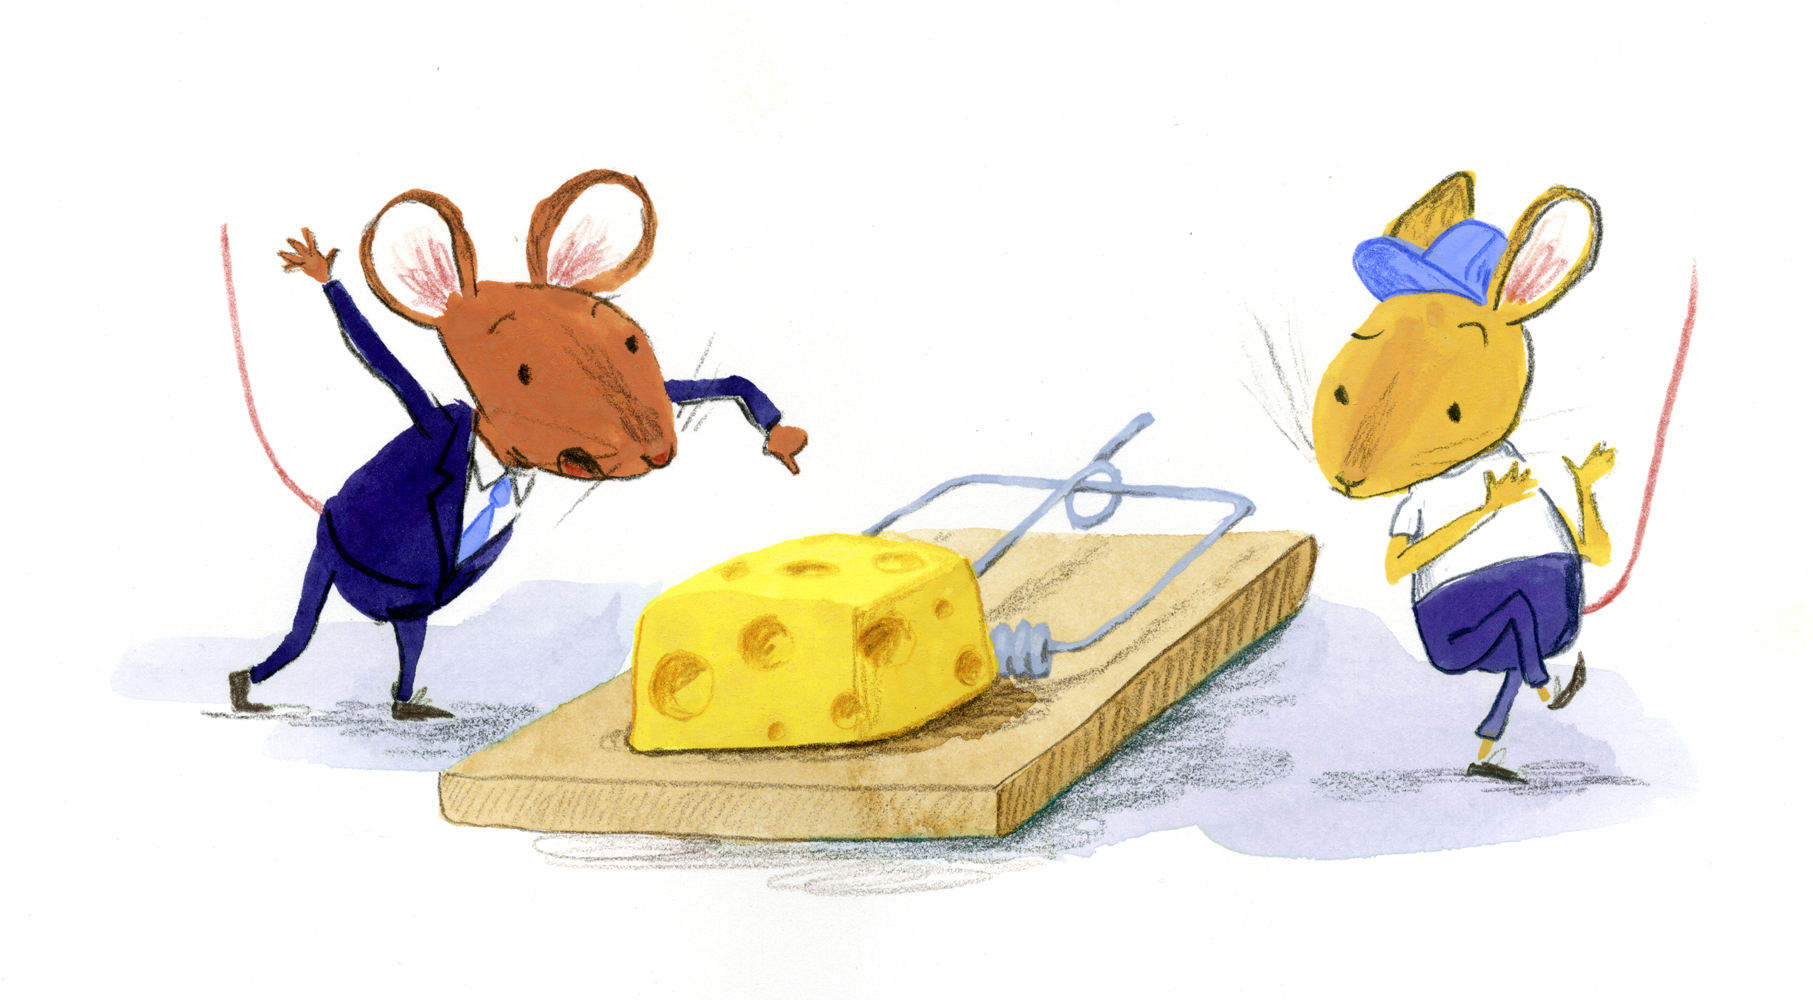 11 Farley Aesops Fable mouse trap.jpg